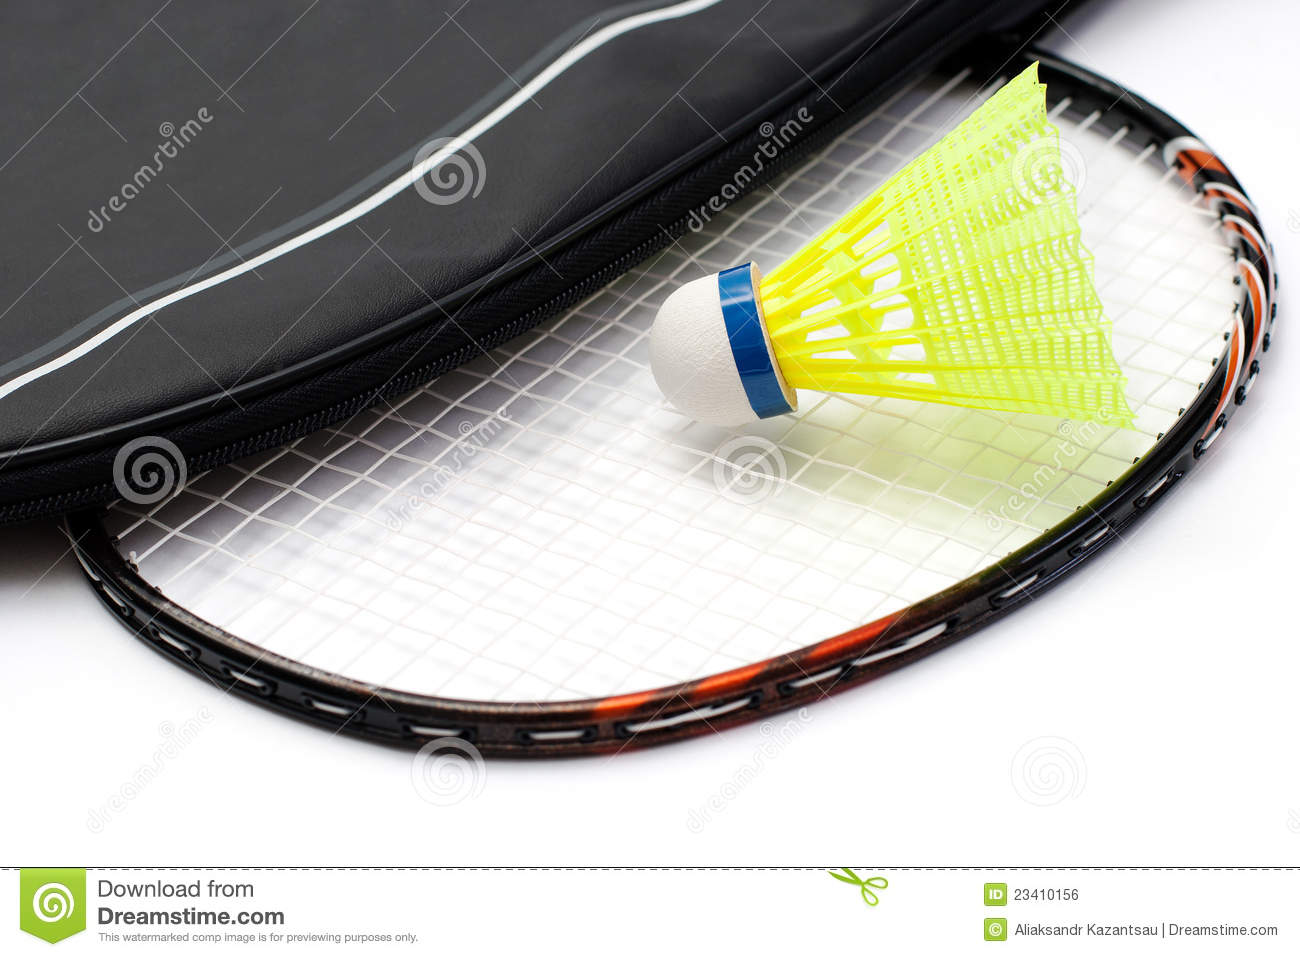 Royalty Free Stock Image  Badminton racket and shuttlecockBadminton Racket And Shuttlecock